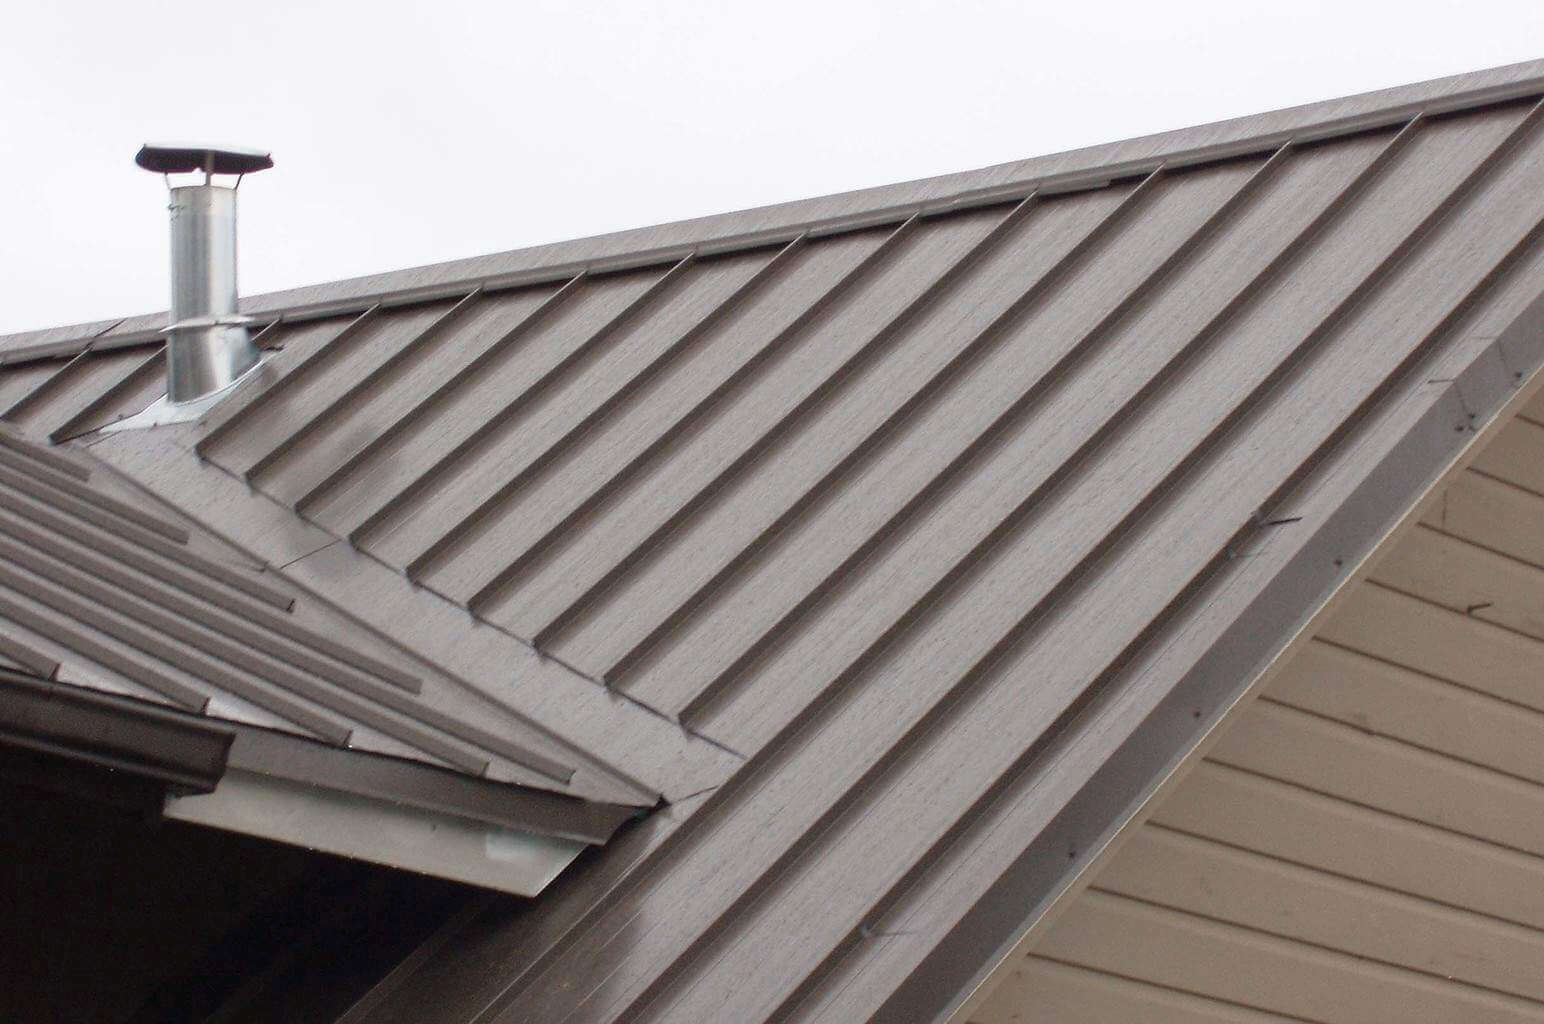 Why Metal Roofs On Top Of An Asphalt Roof Is A Horrible